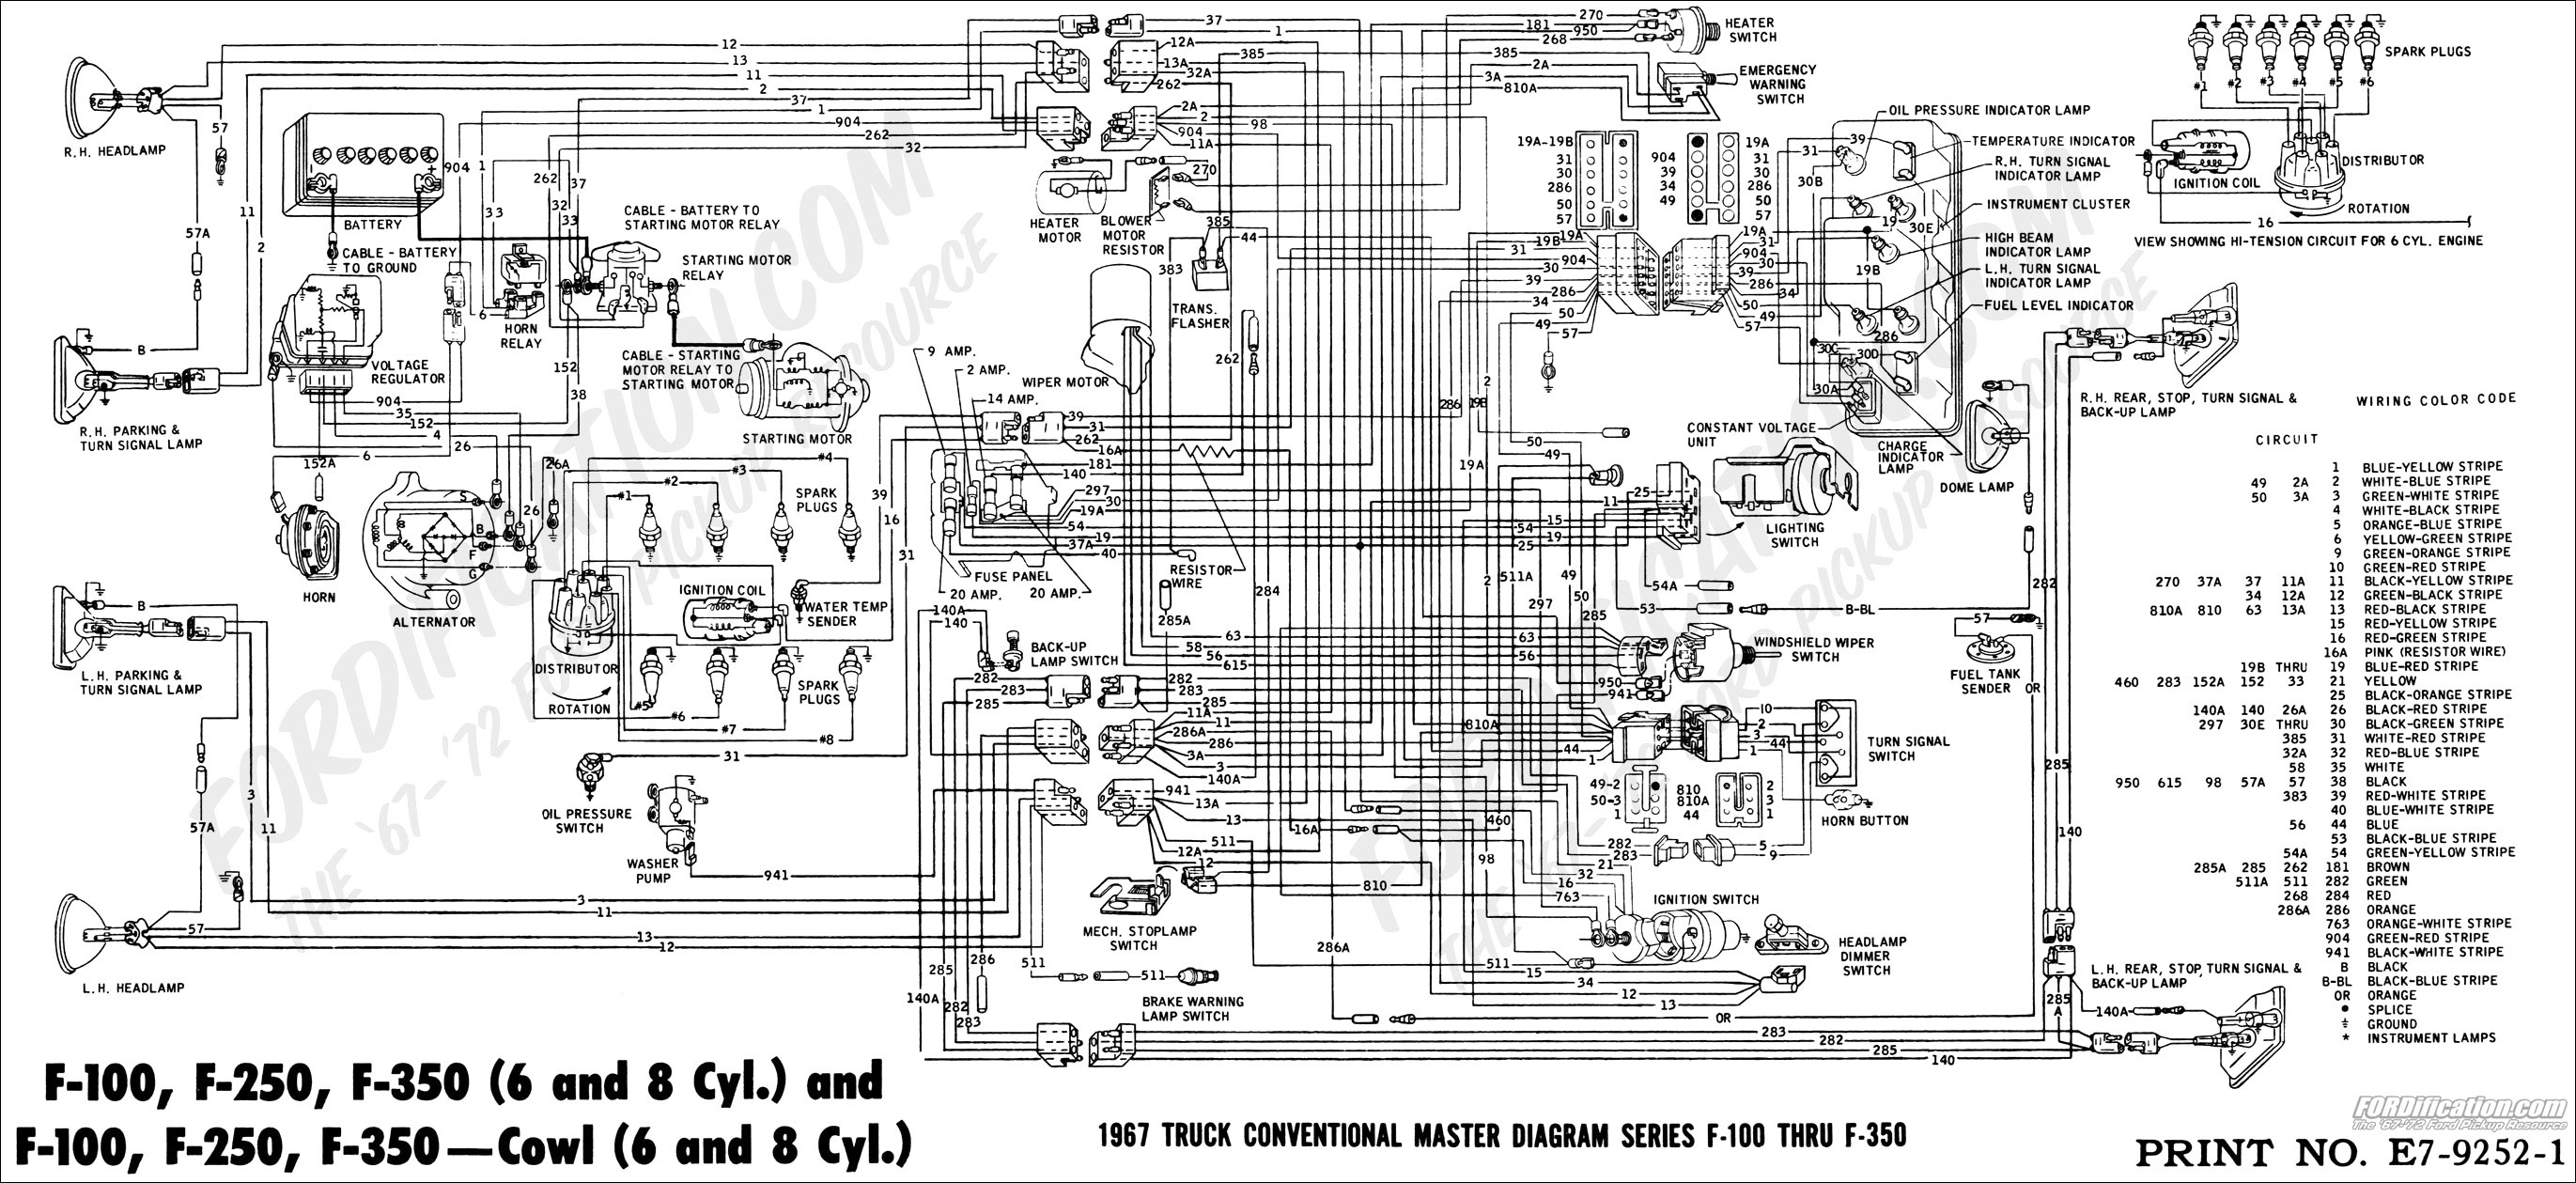 Transmission For 2000 Ford F 250 Wiring Diagram - Wiring Diagram •